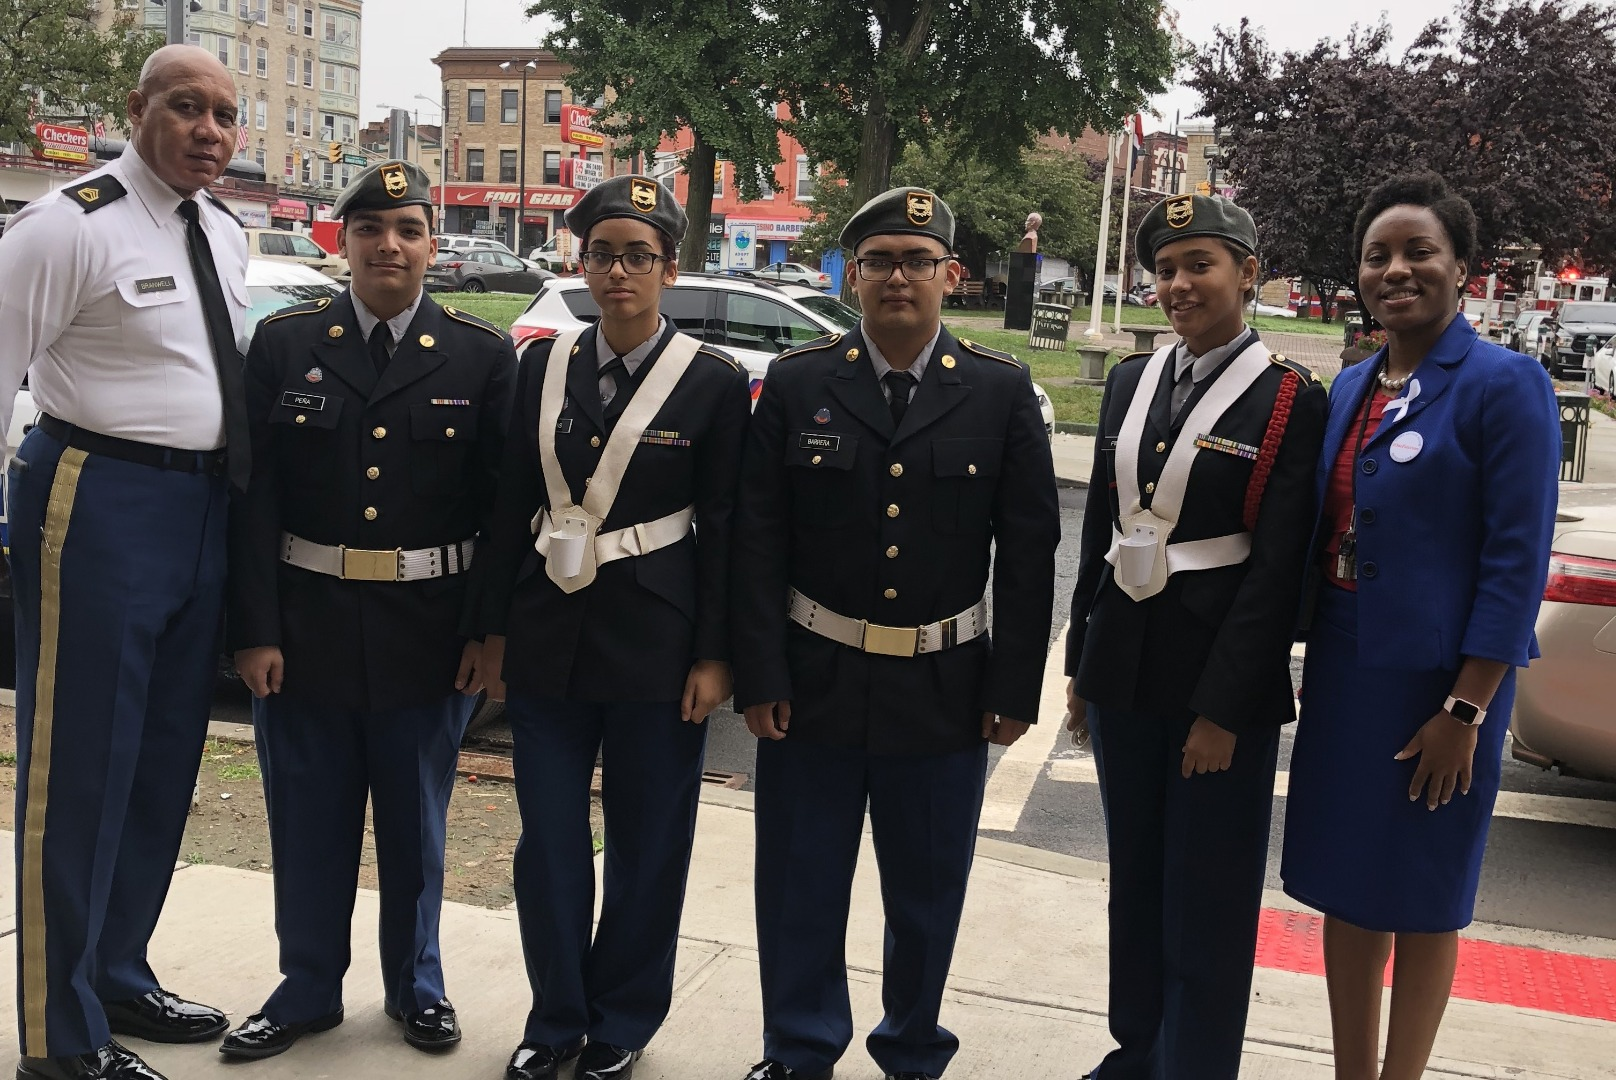 SFC Mauricio Branwell and Vice Principal Hilbert Stand with Cadets at the  Mayor's Ceremony.